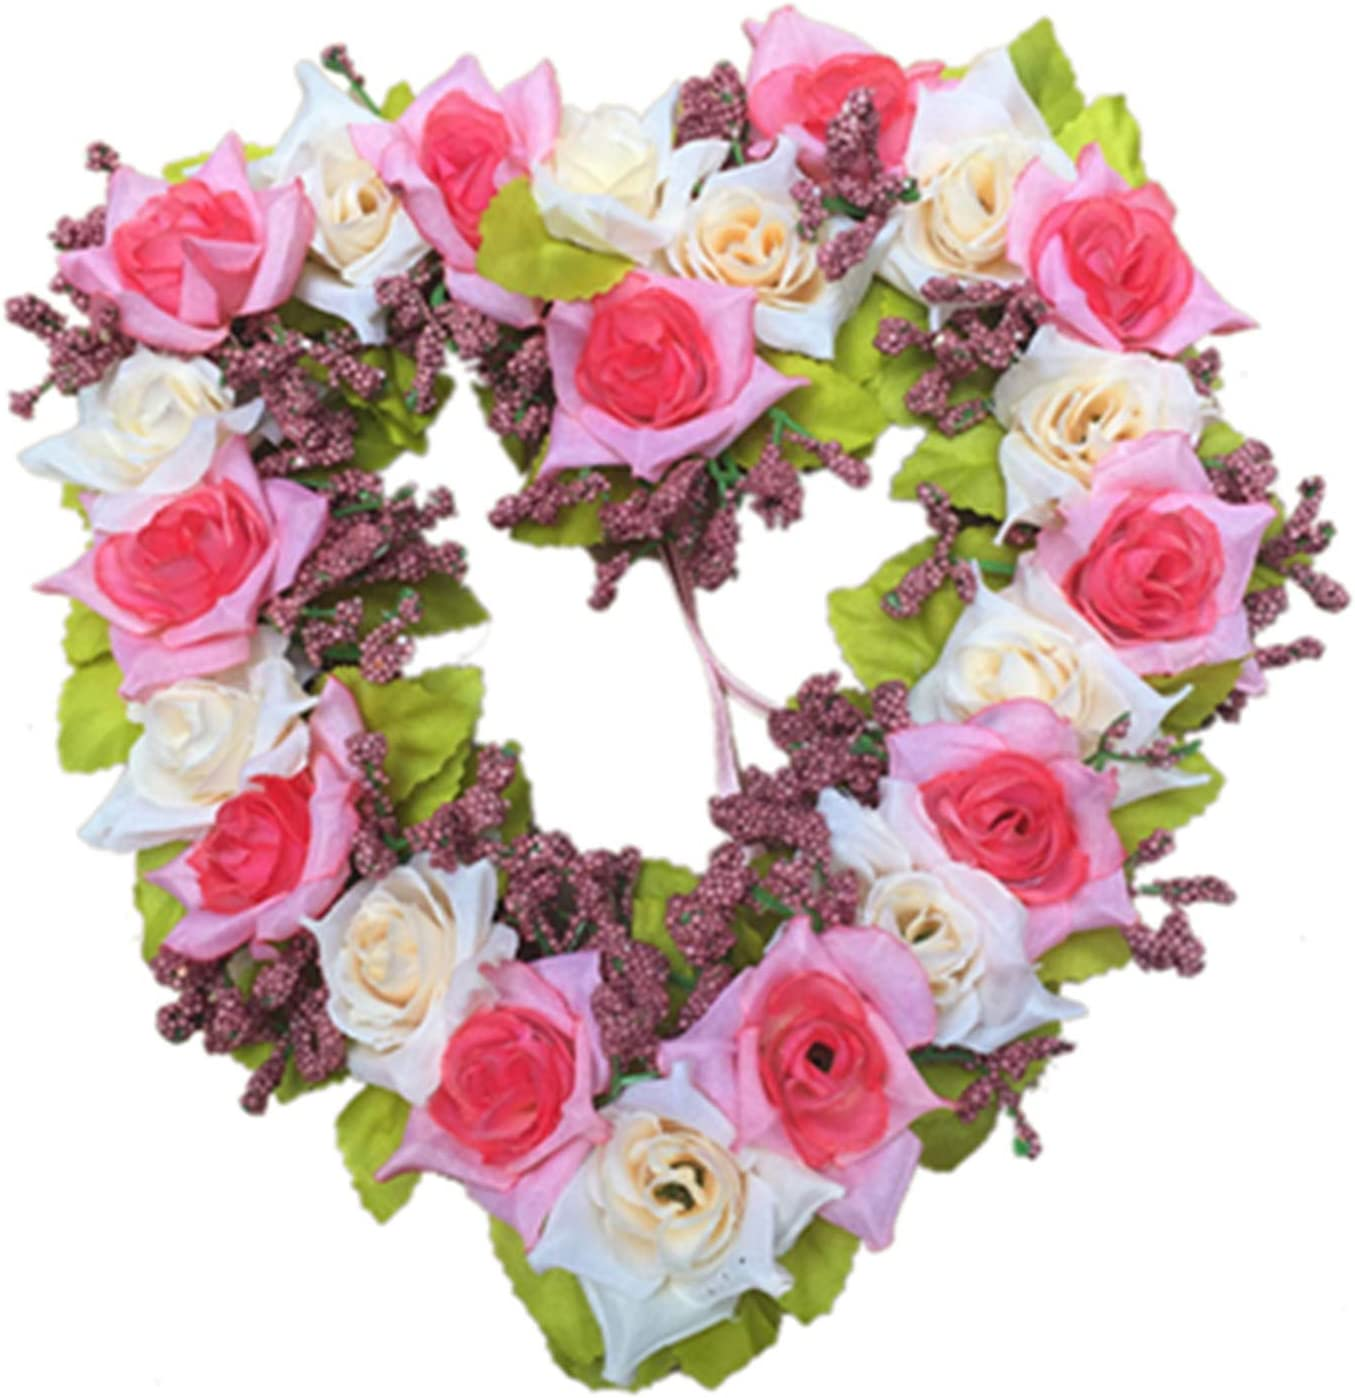 Romantic Heart Shaped Wreath Artificial Flower Hanging Garland for Wedding Party